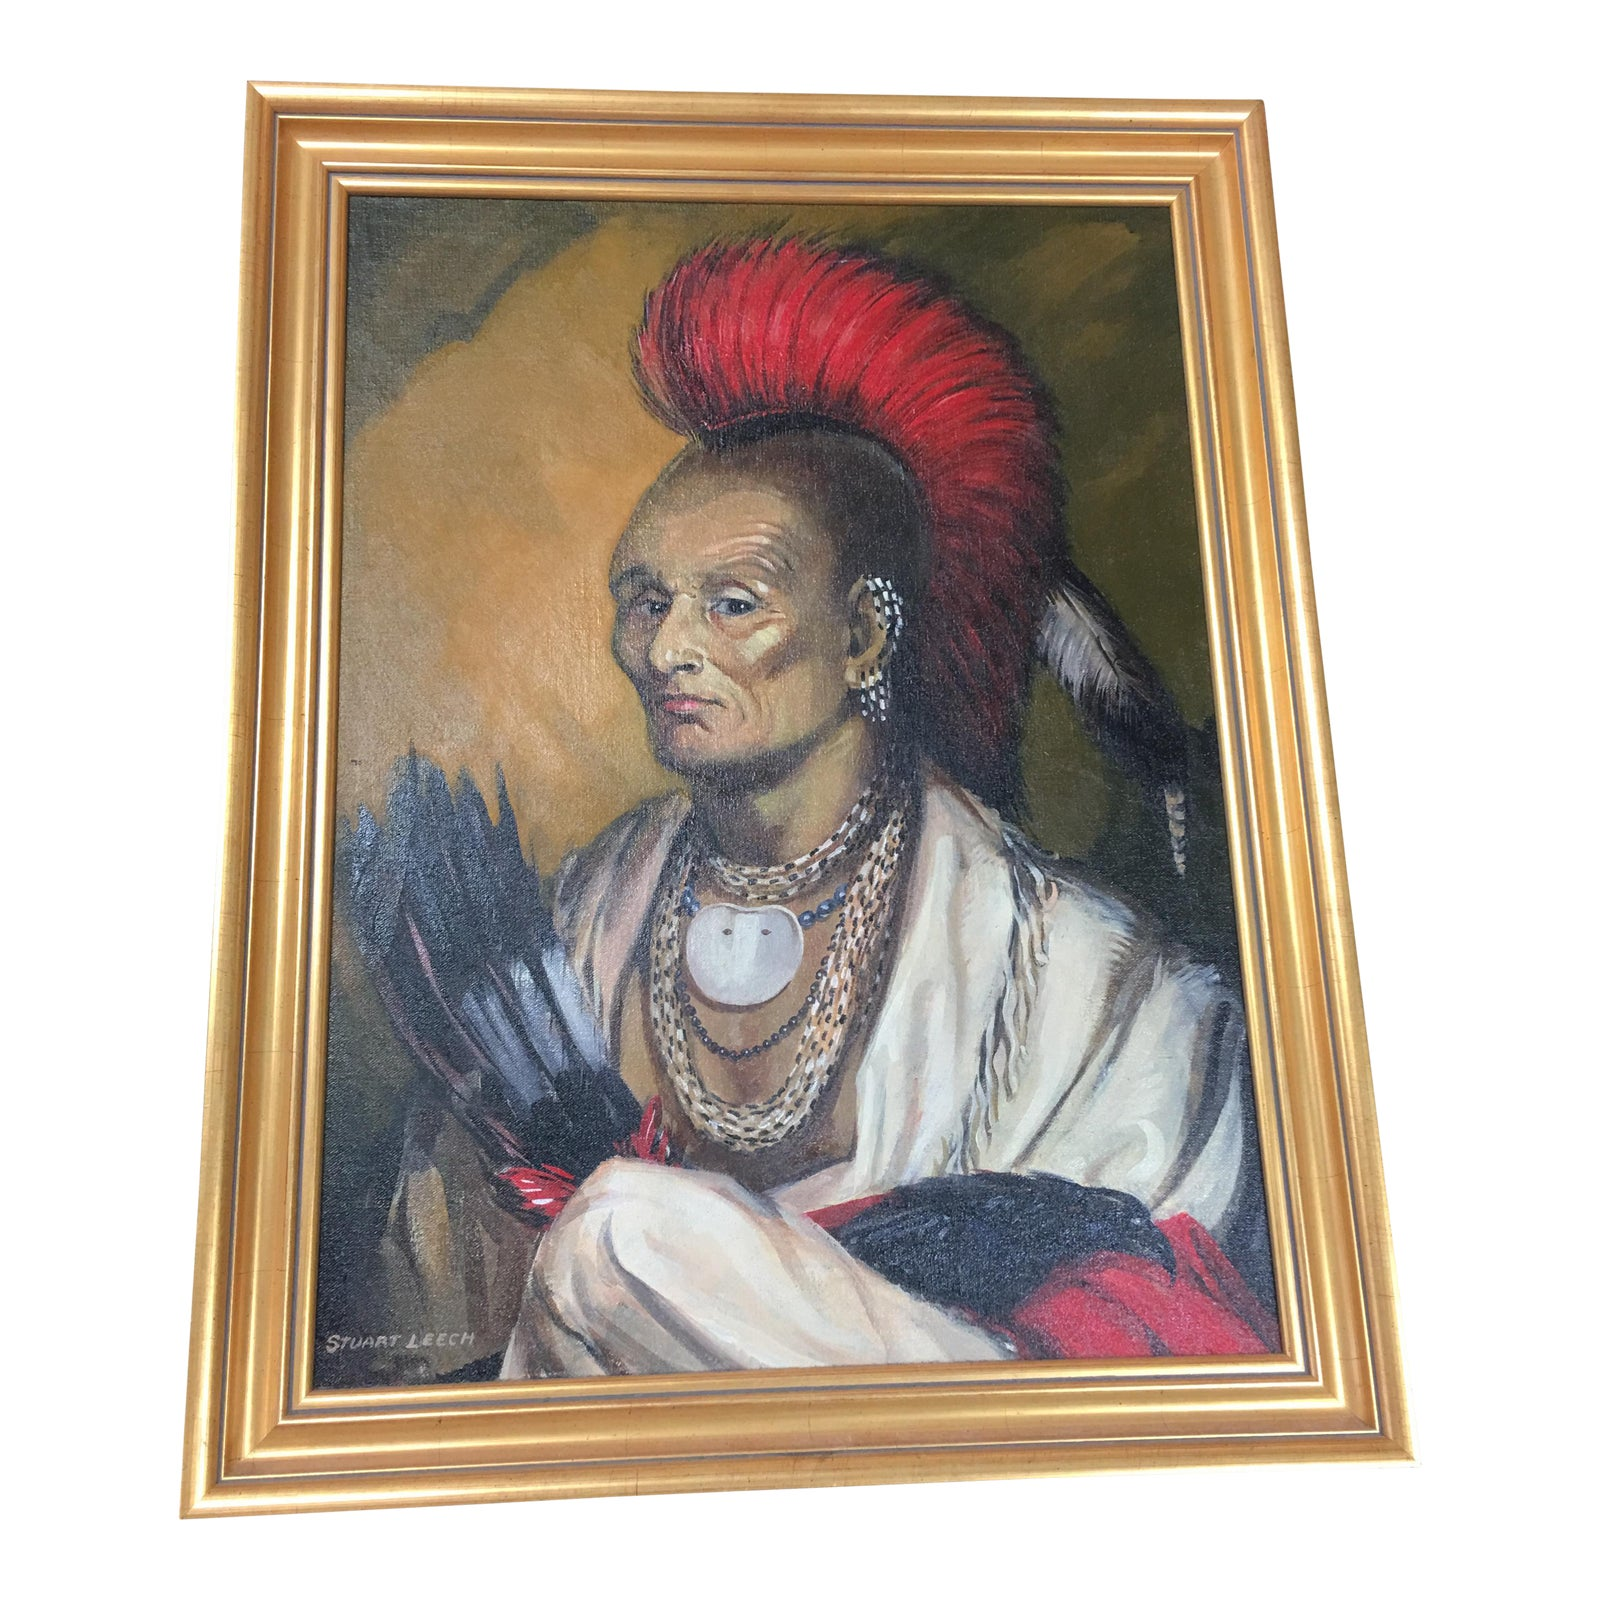 Quot Native Chief Quot Signed Stuart Leech Oil Painting On Board